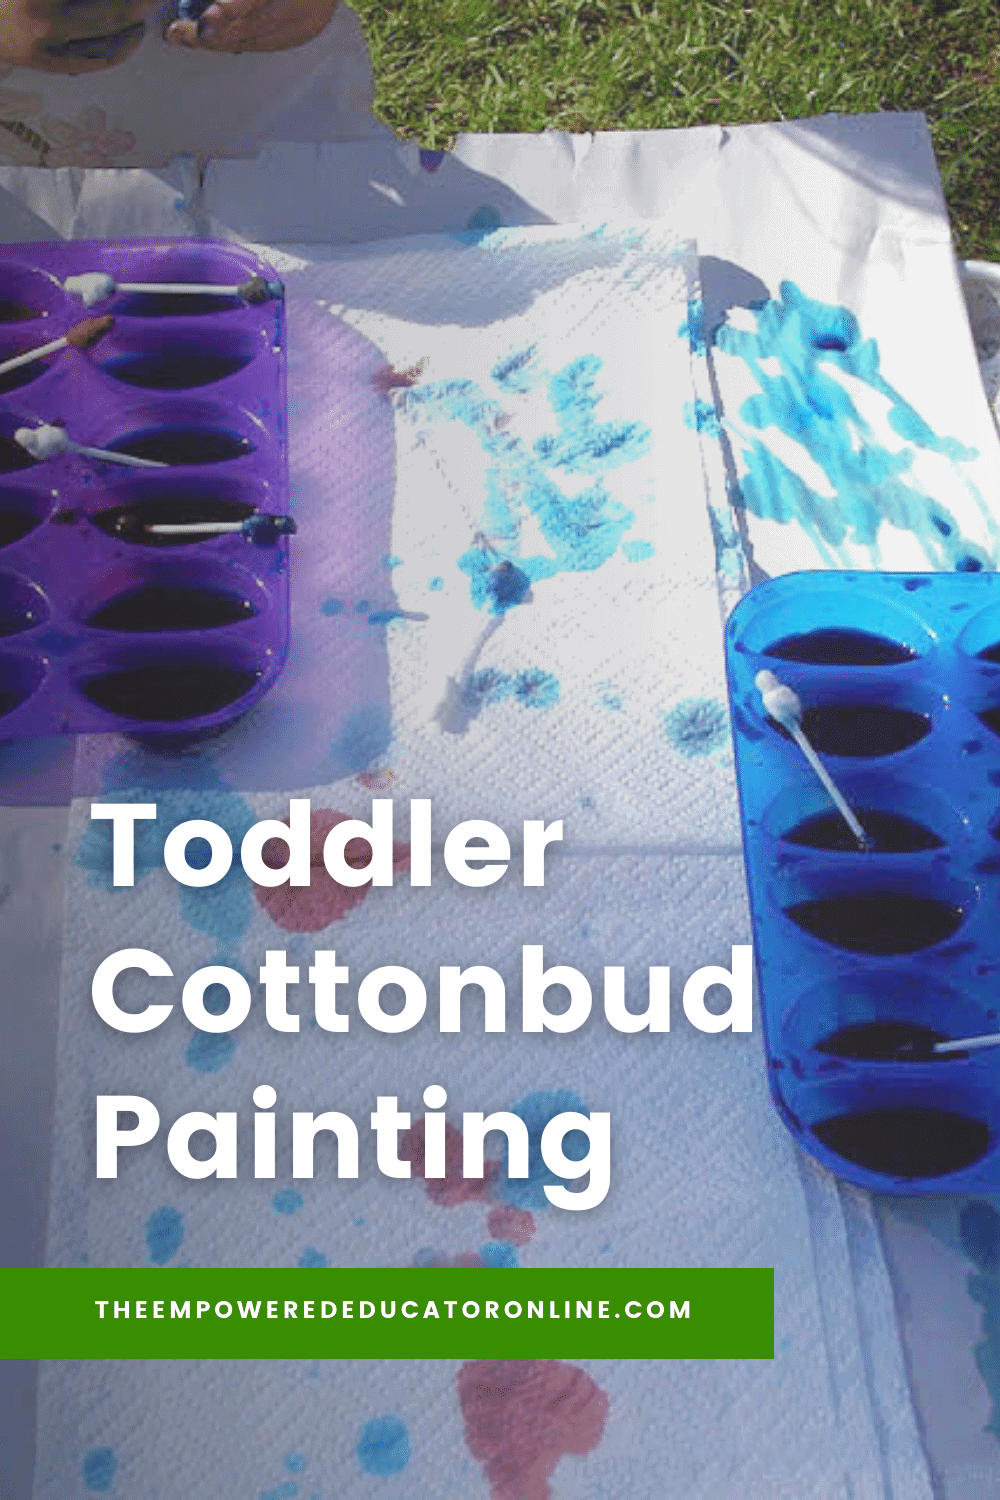 Toddler Cottonbud Painting